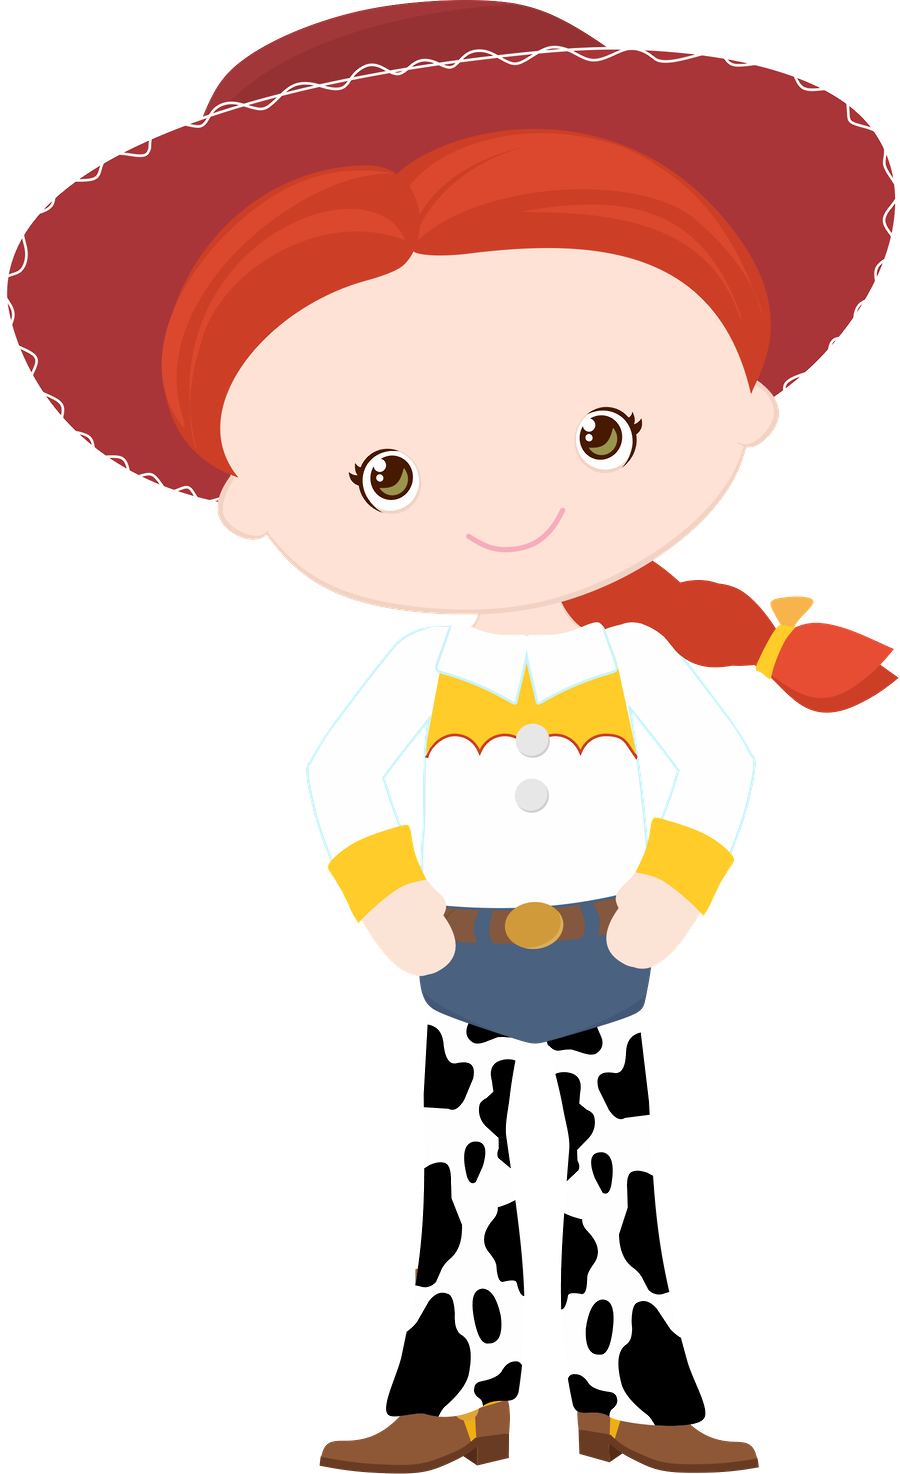 Grafos Girl Png Festa Infantil Toy Story Festa Tematica Toy Story Toy Story